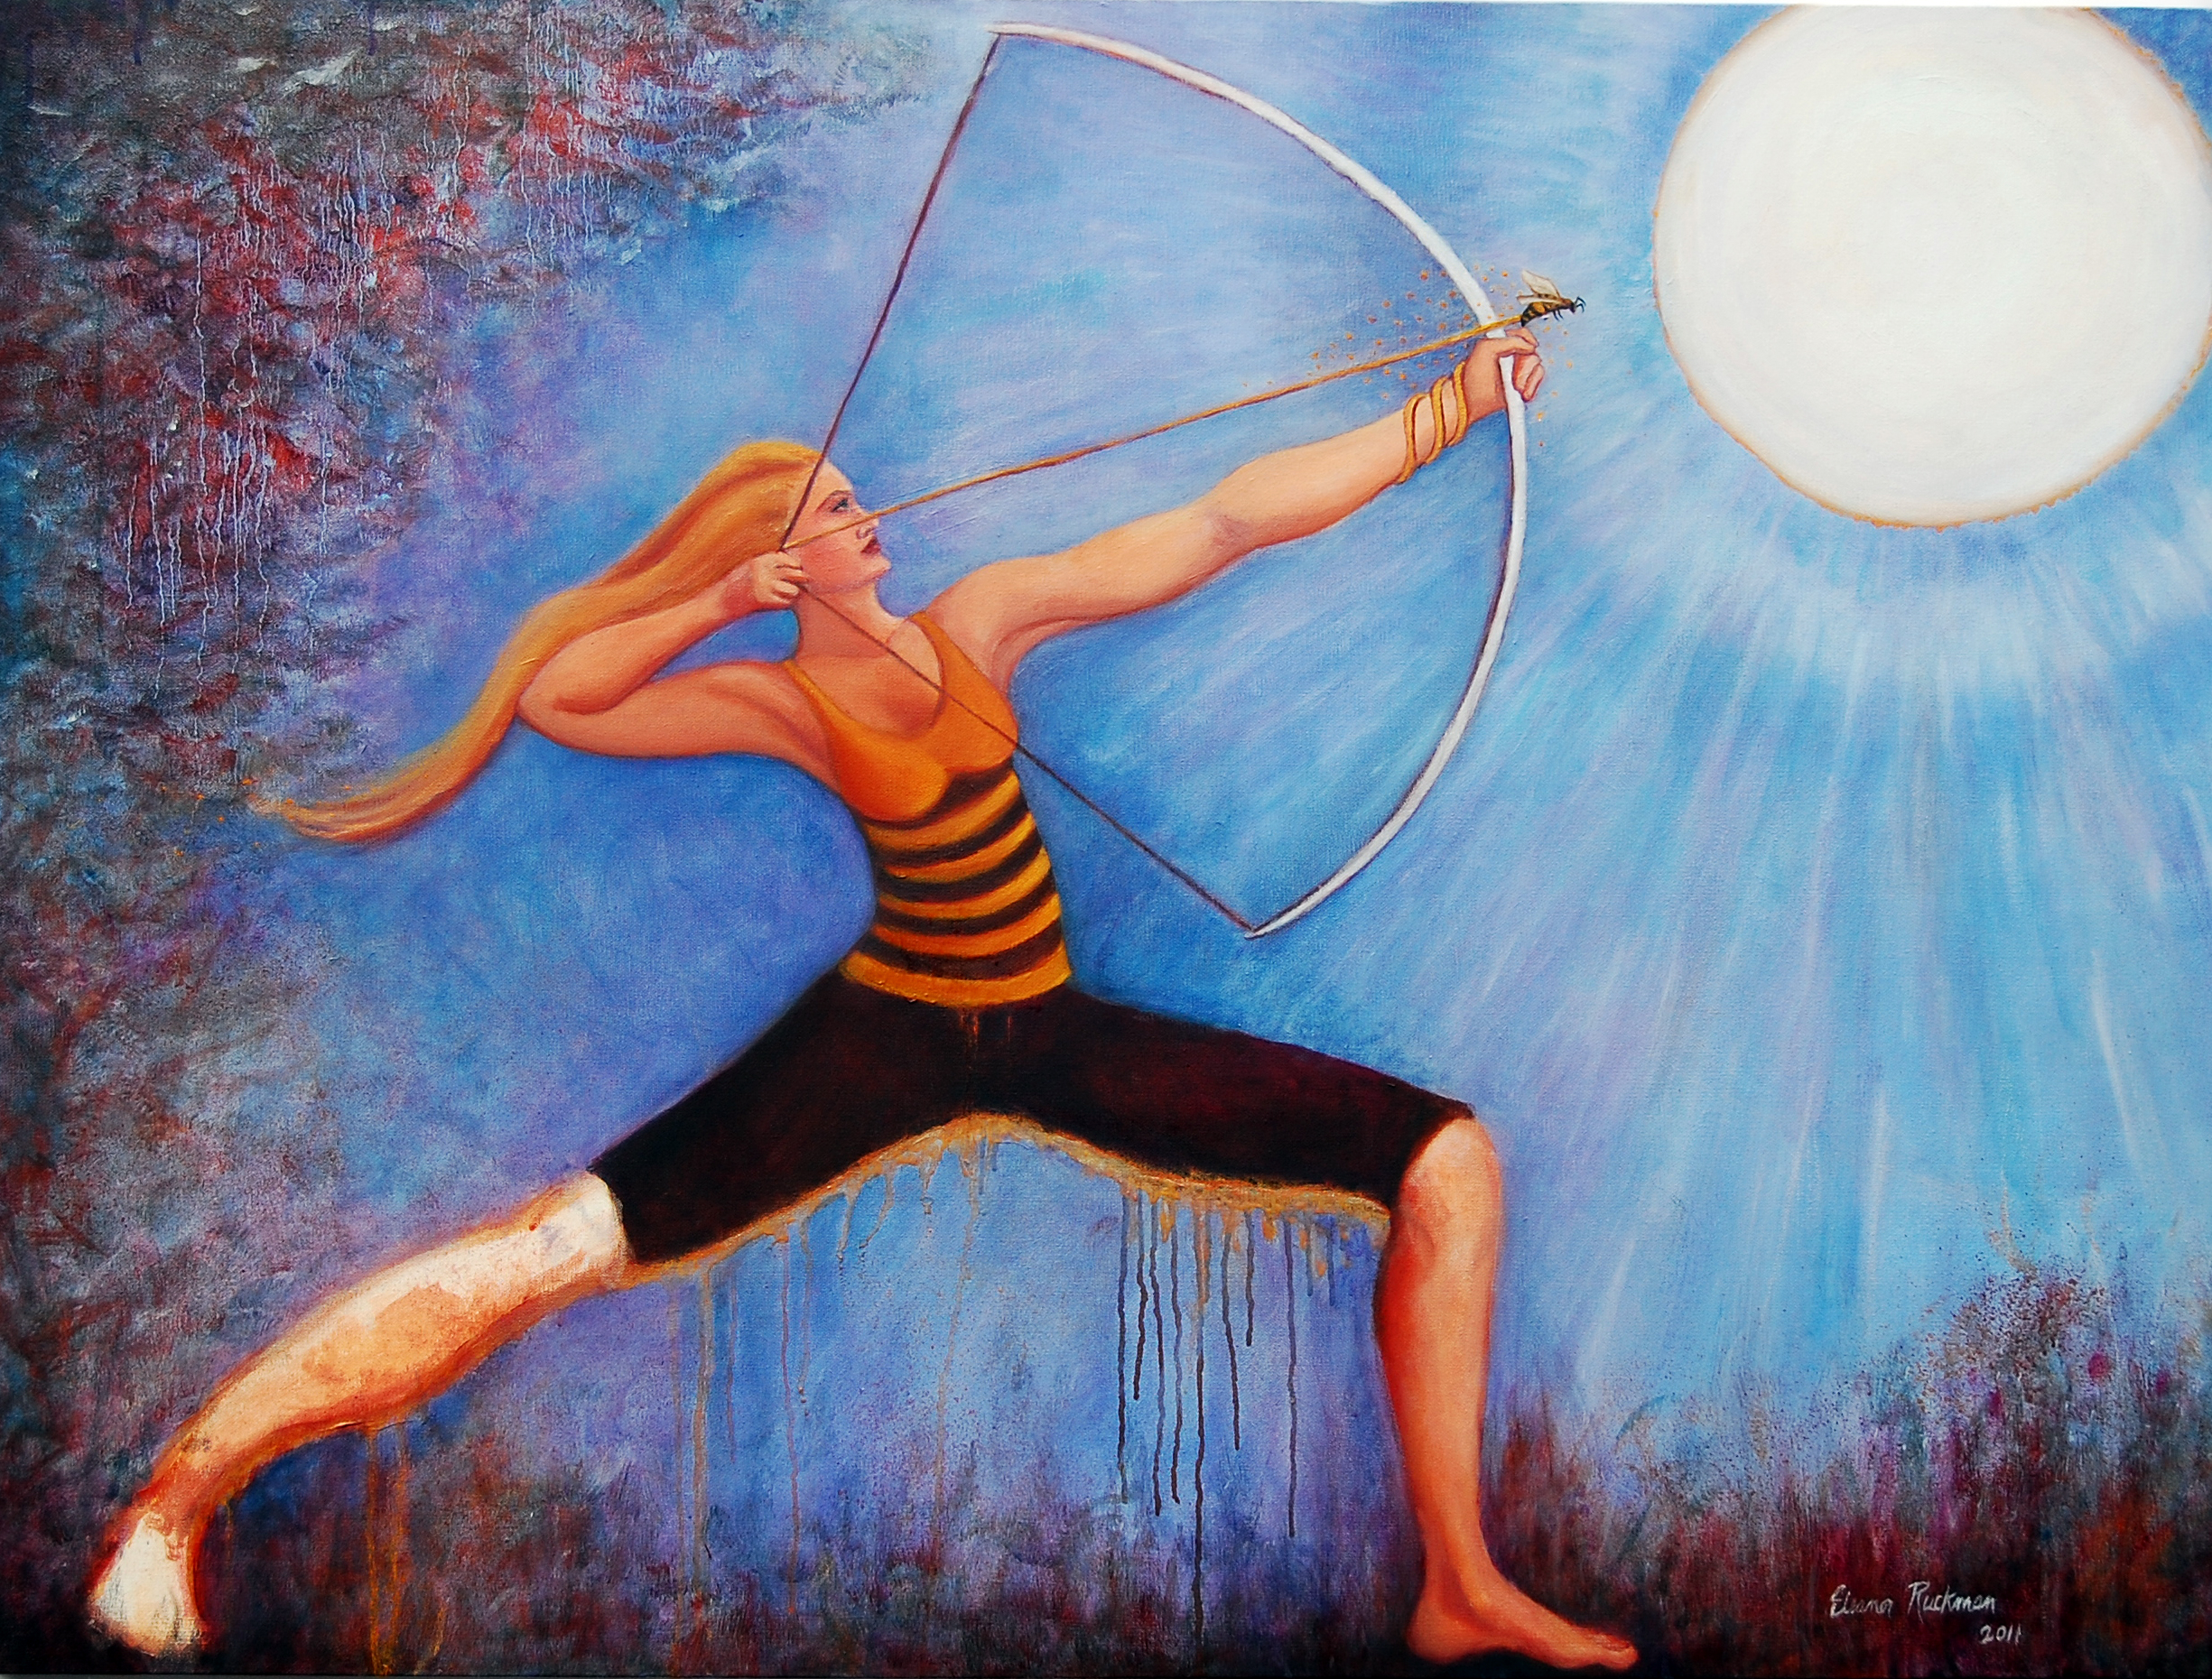 "Taking Aim, 2011, Oil on canvas, 30""h x 40""w, Eleanor Ruckman"